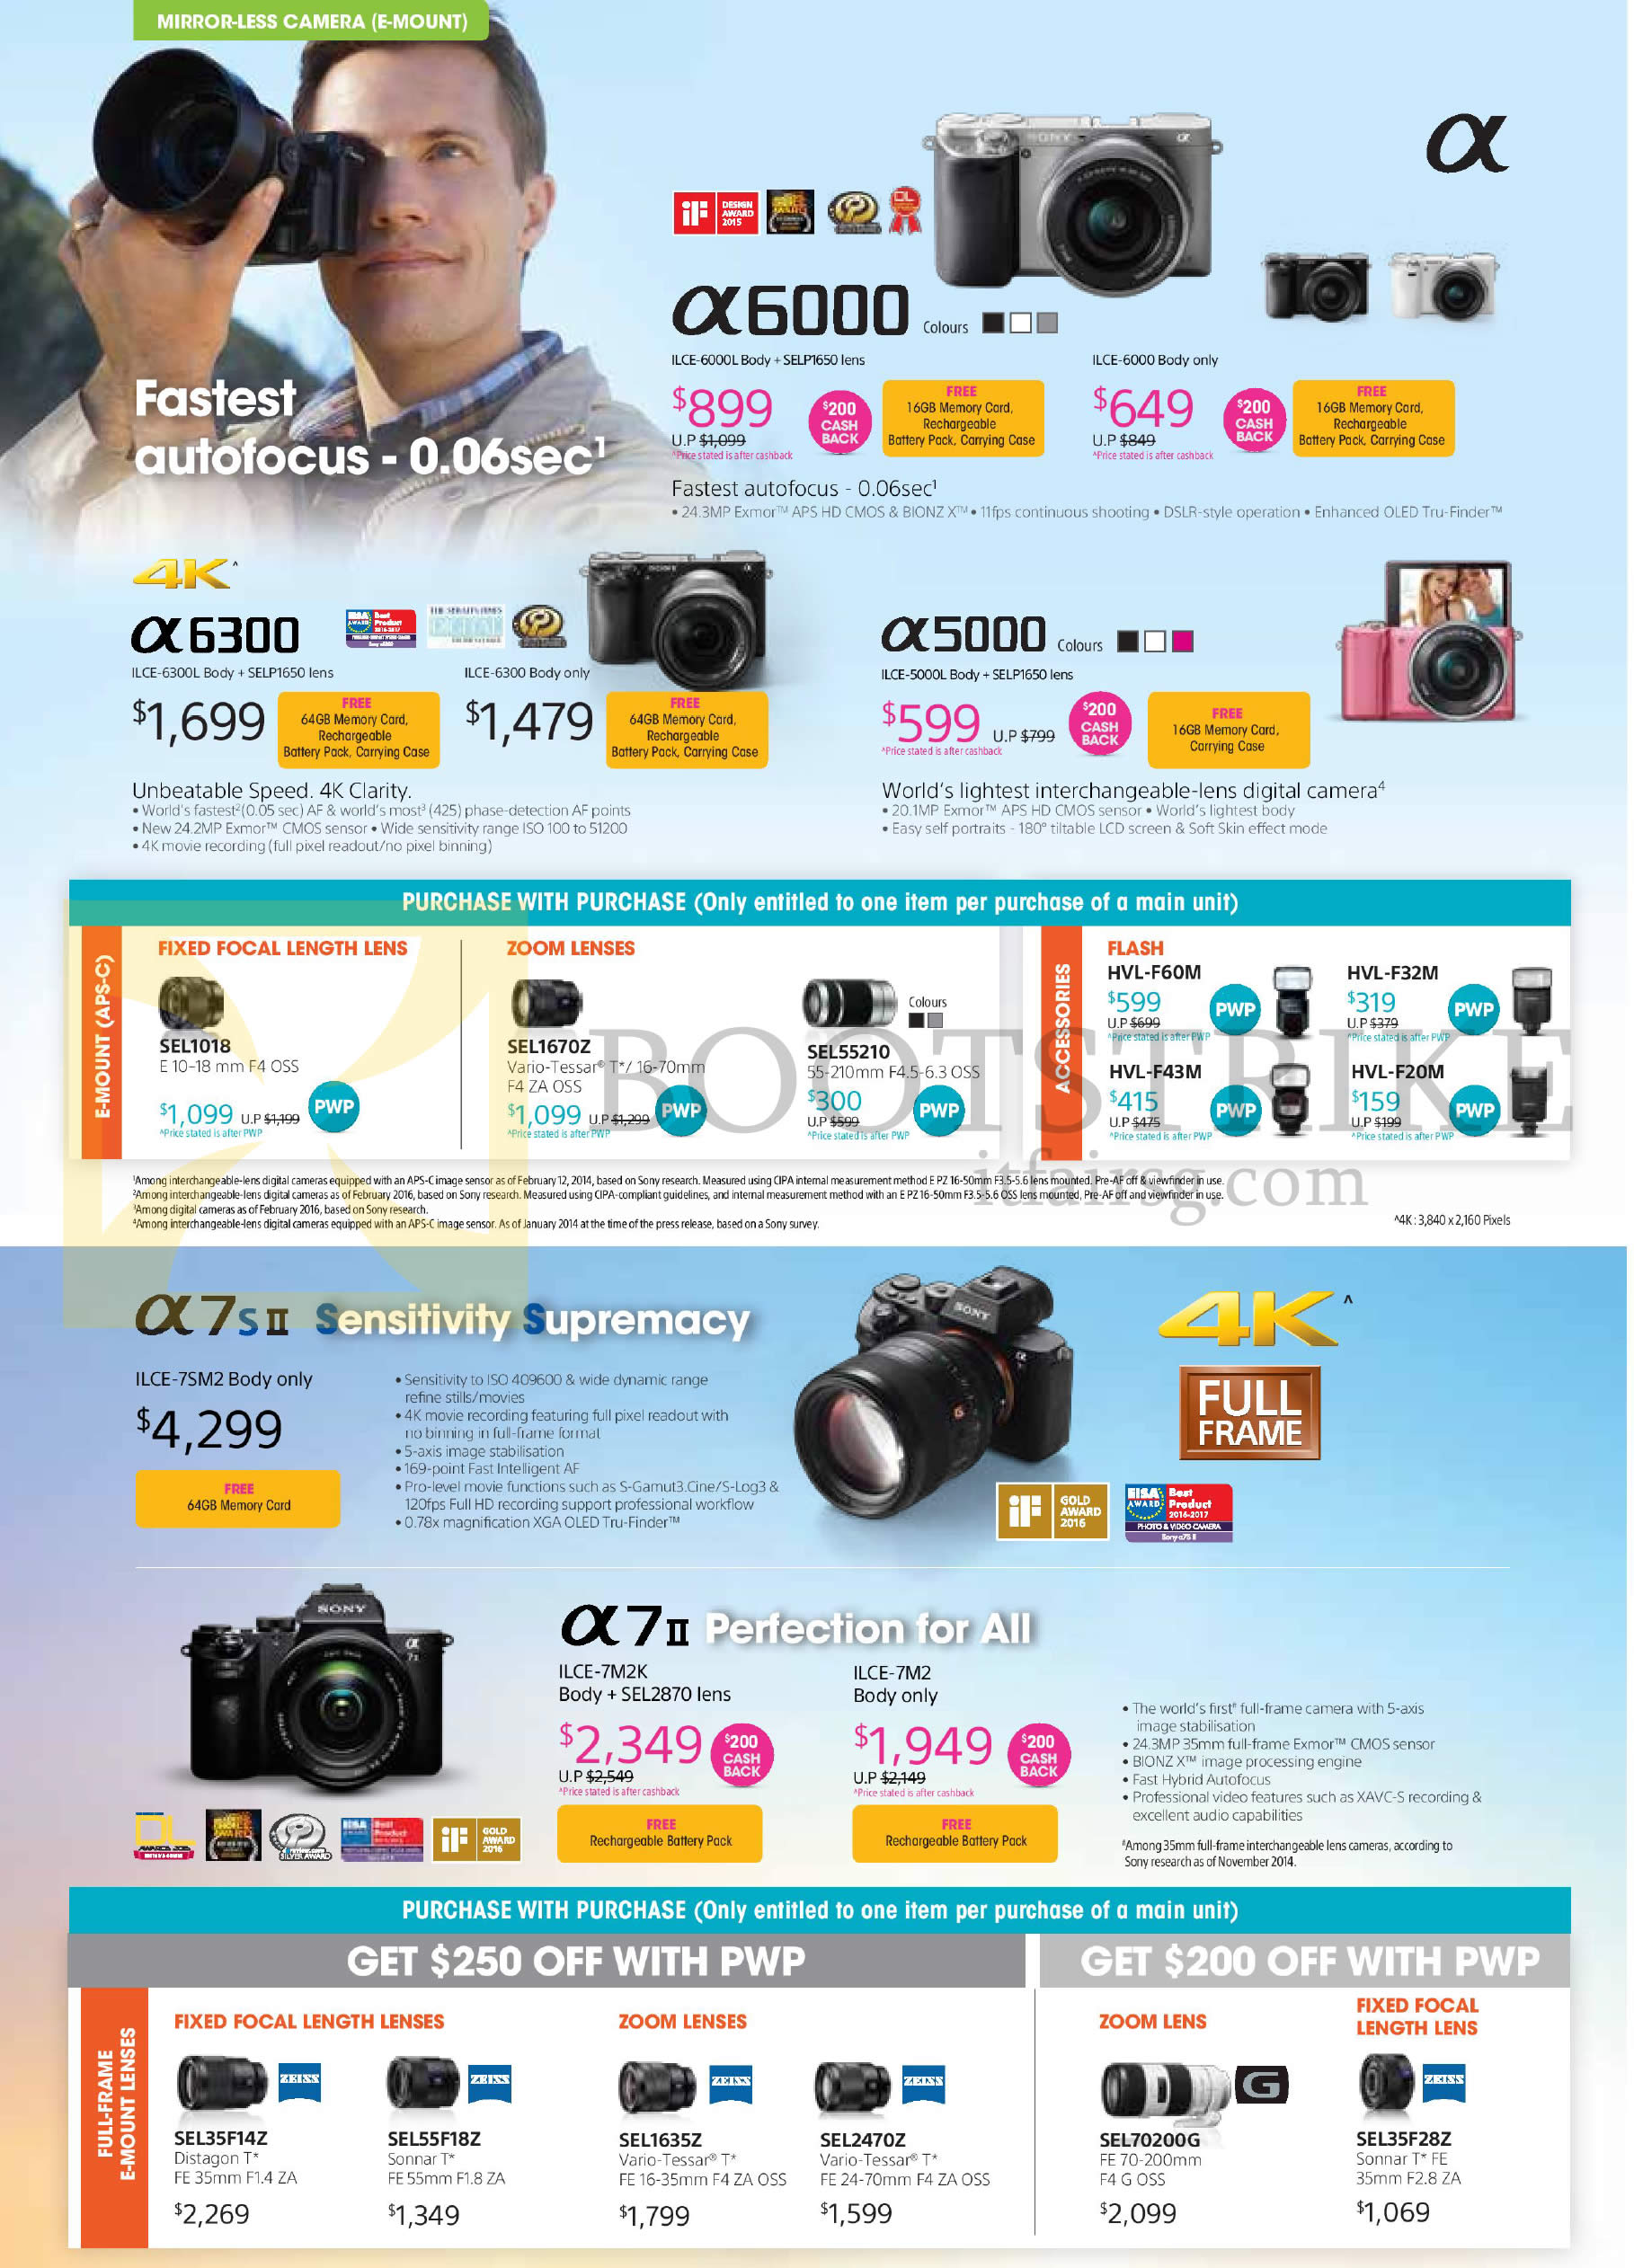 COMEX 2016 price list image brochure of Sony Mirrorless Digital Cameras, A6000, A6300, A5000, A7s II, A7 II, Purchase With Purchase Focal Length Lenses, Zoom Lenses